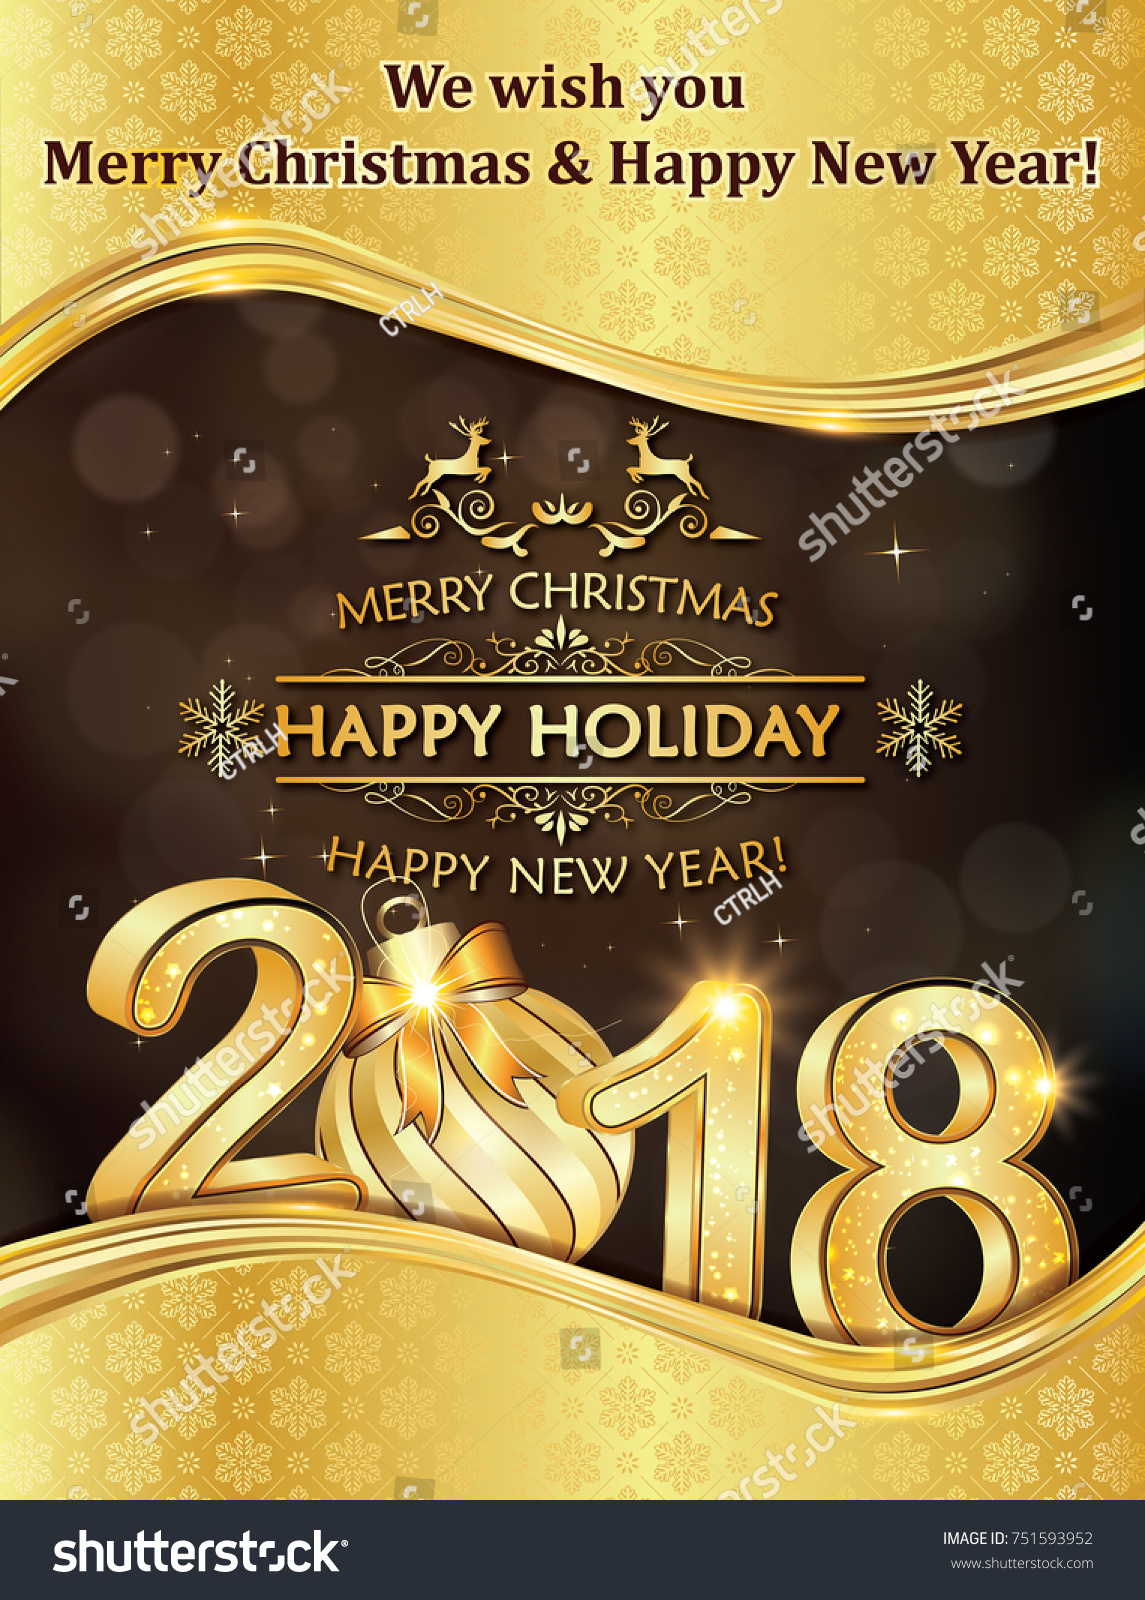 2018 merry christmas and happy new year corporate greeting card print colors used